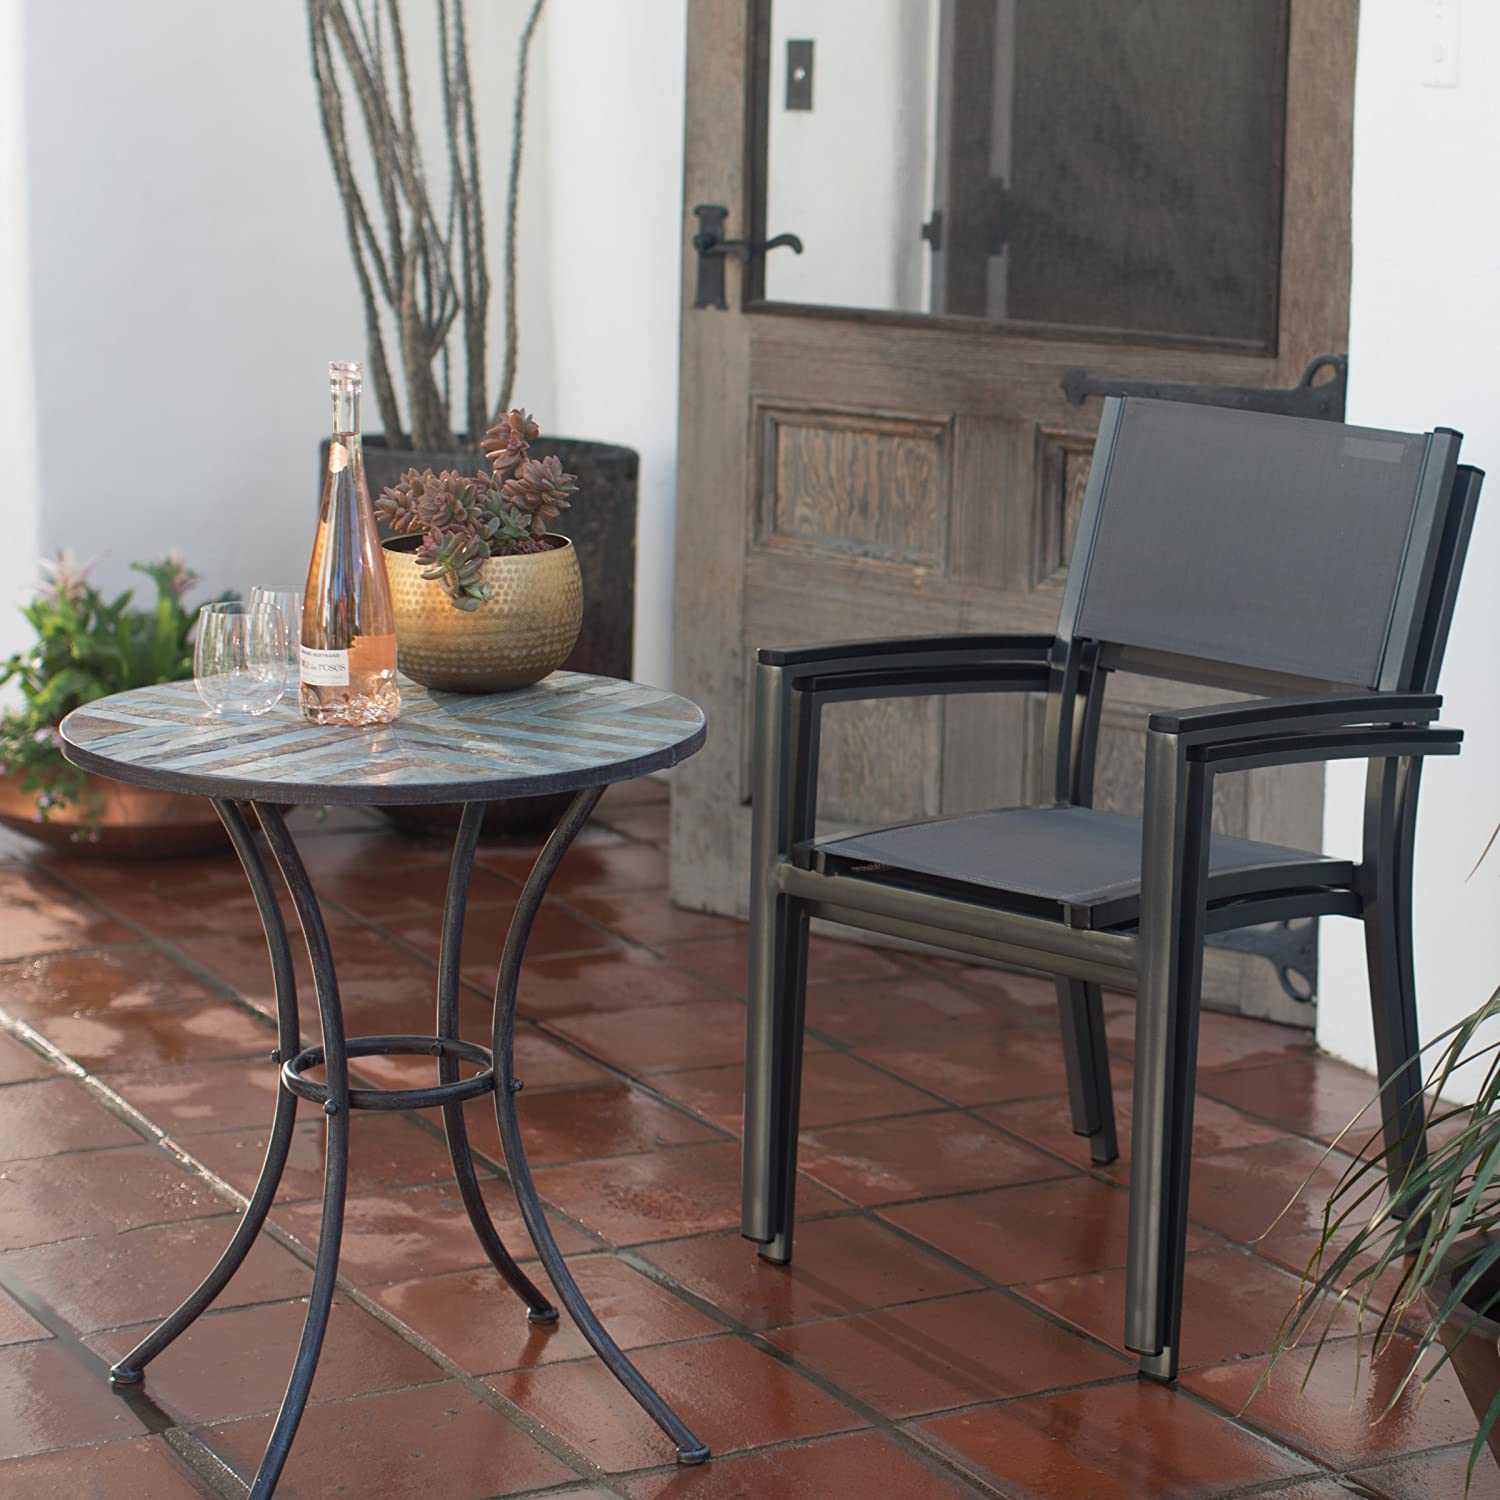 Modern Sling Stacking Outdoor Patio Dining Chair With Polywood Arms And Powder-Coated Aluminum Frame